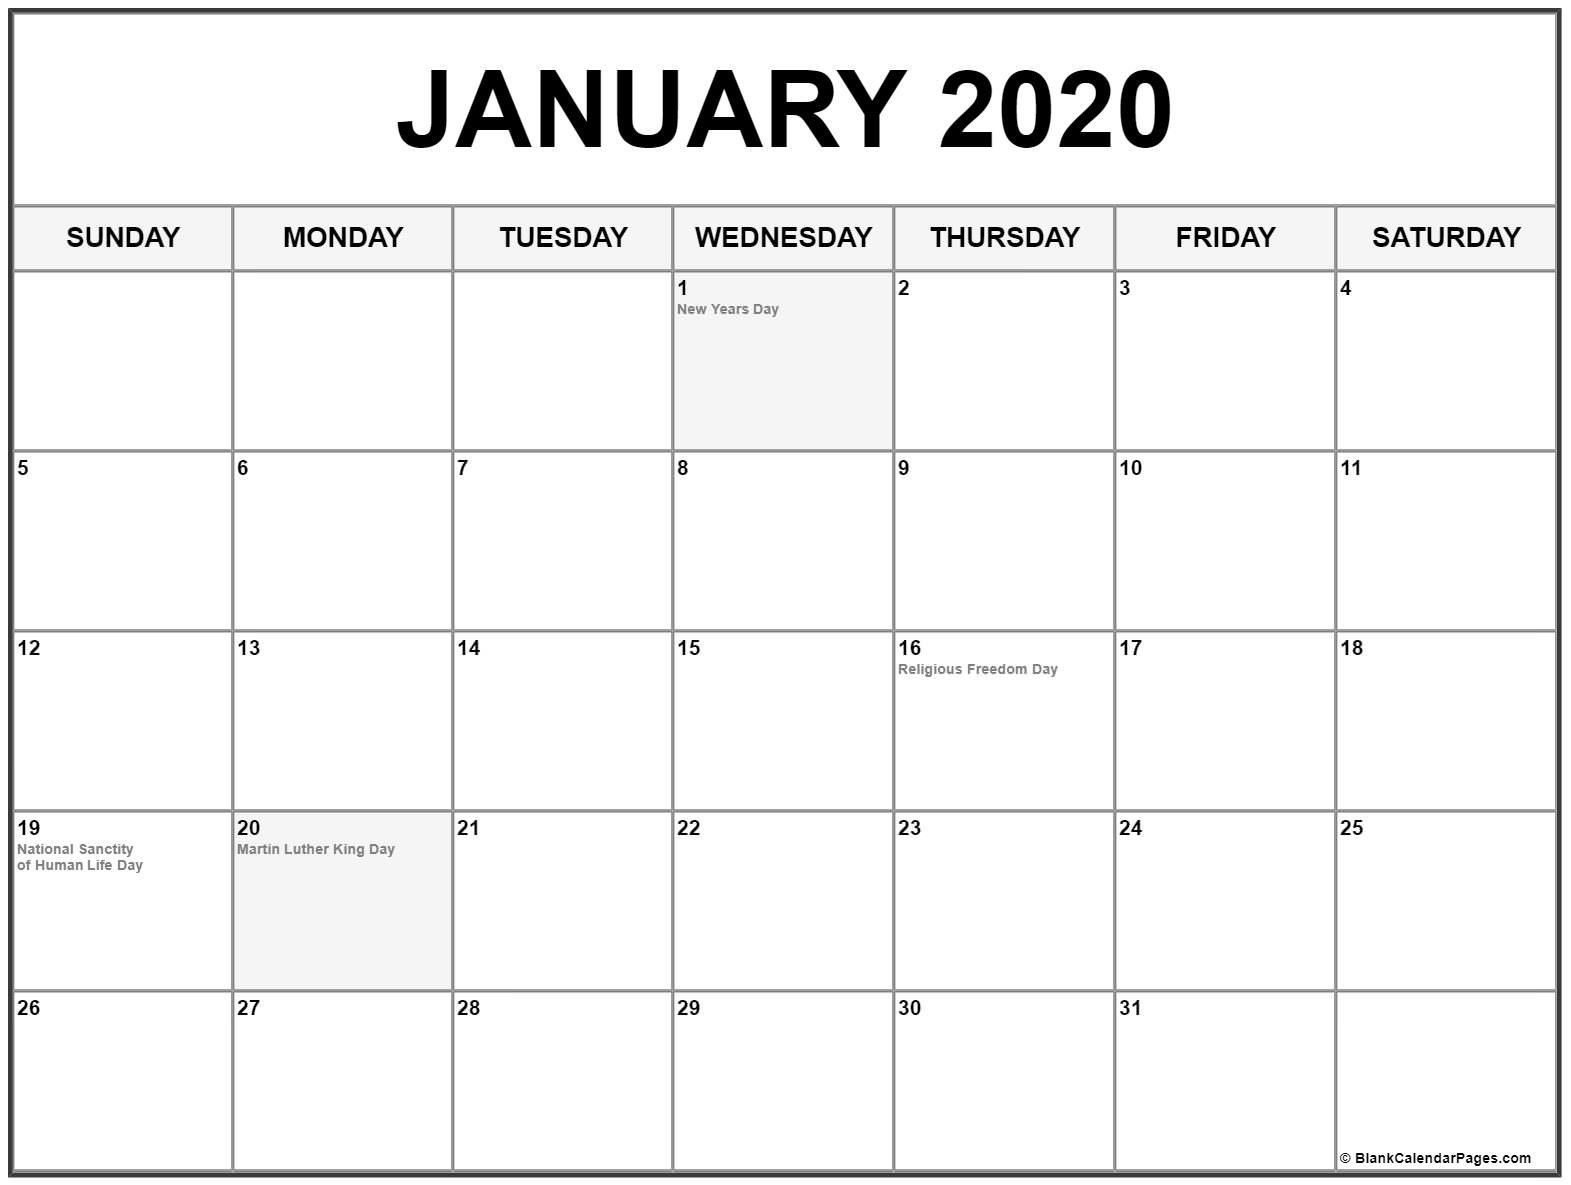 Collection Of January 2020 Calendars With Holidays-January 2020 Calendar With Holidays